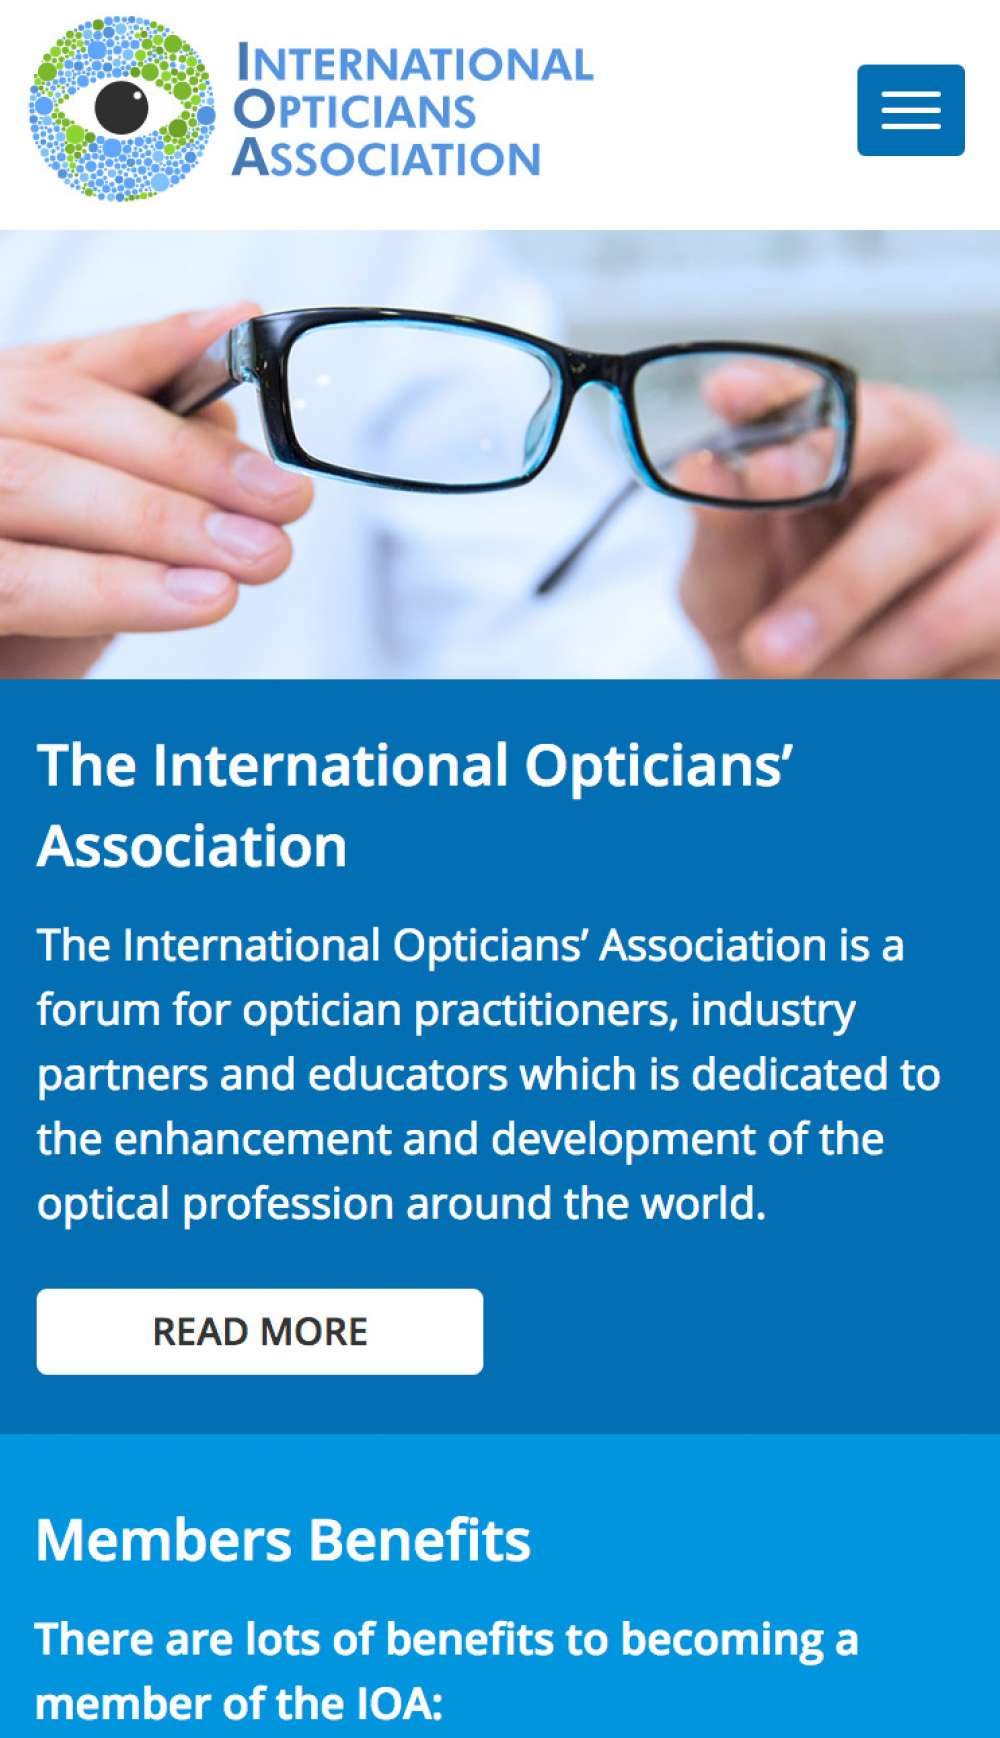 International Optician's Association